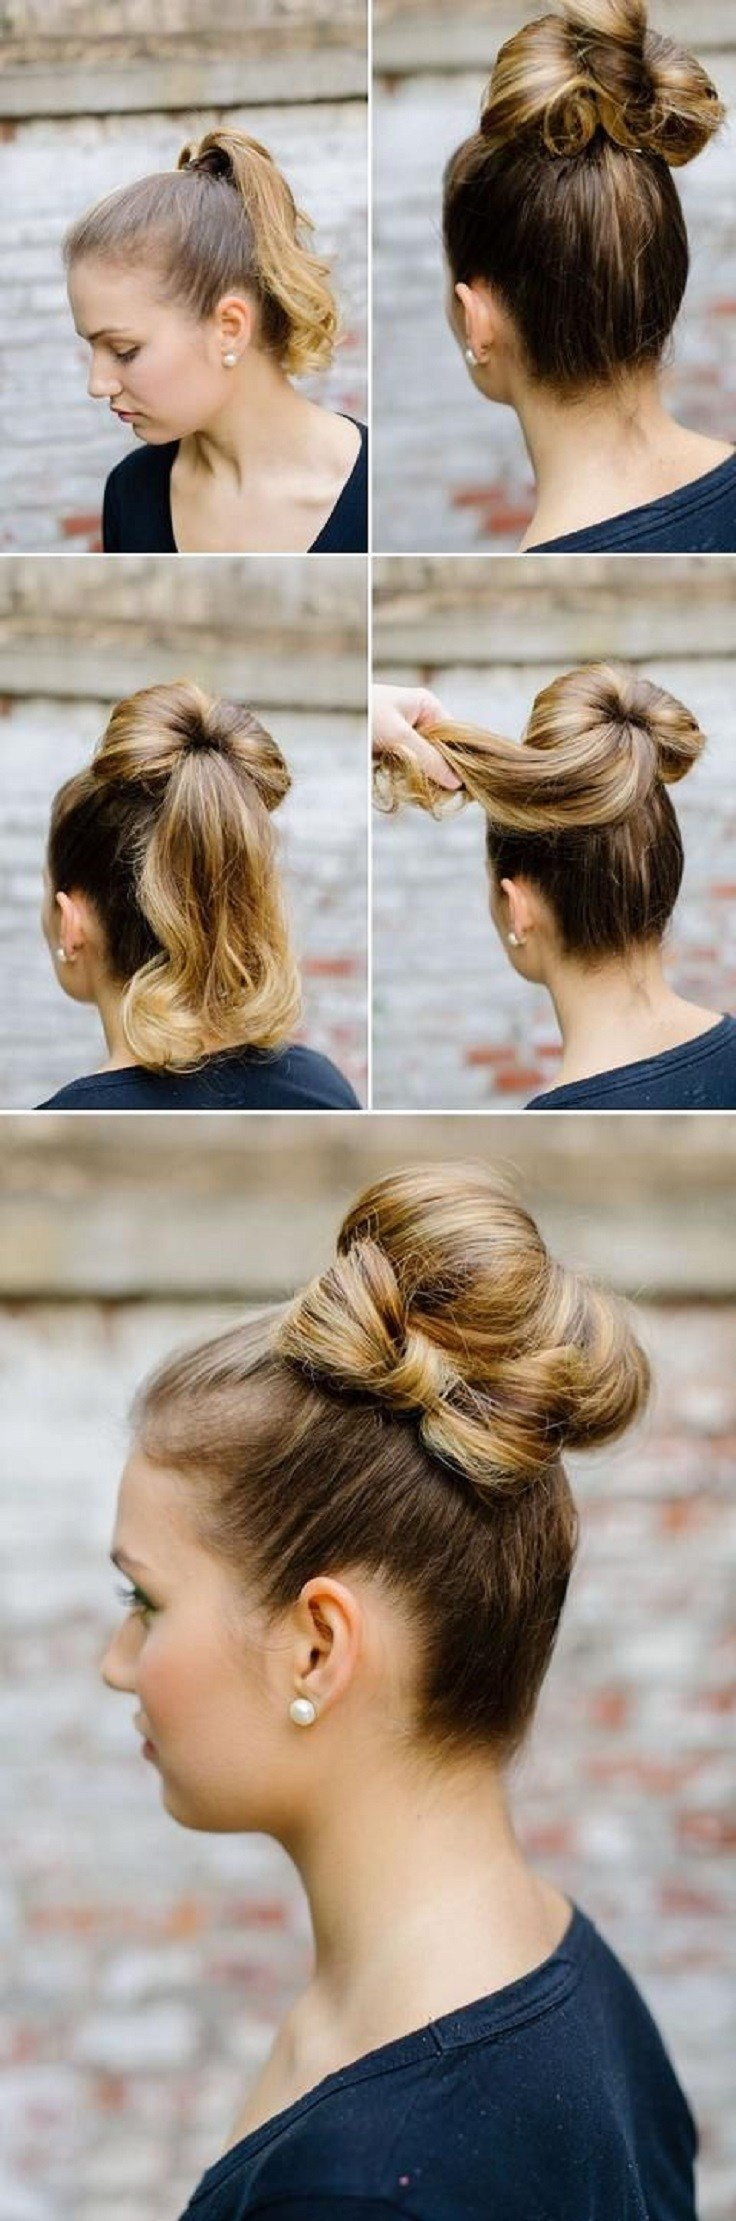 The Best Top 10 Long Hair Tutorials For Night Out Top Inspired Pictures